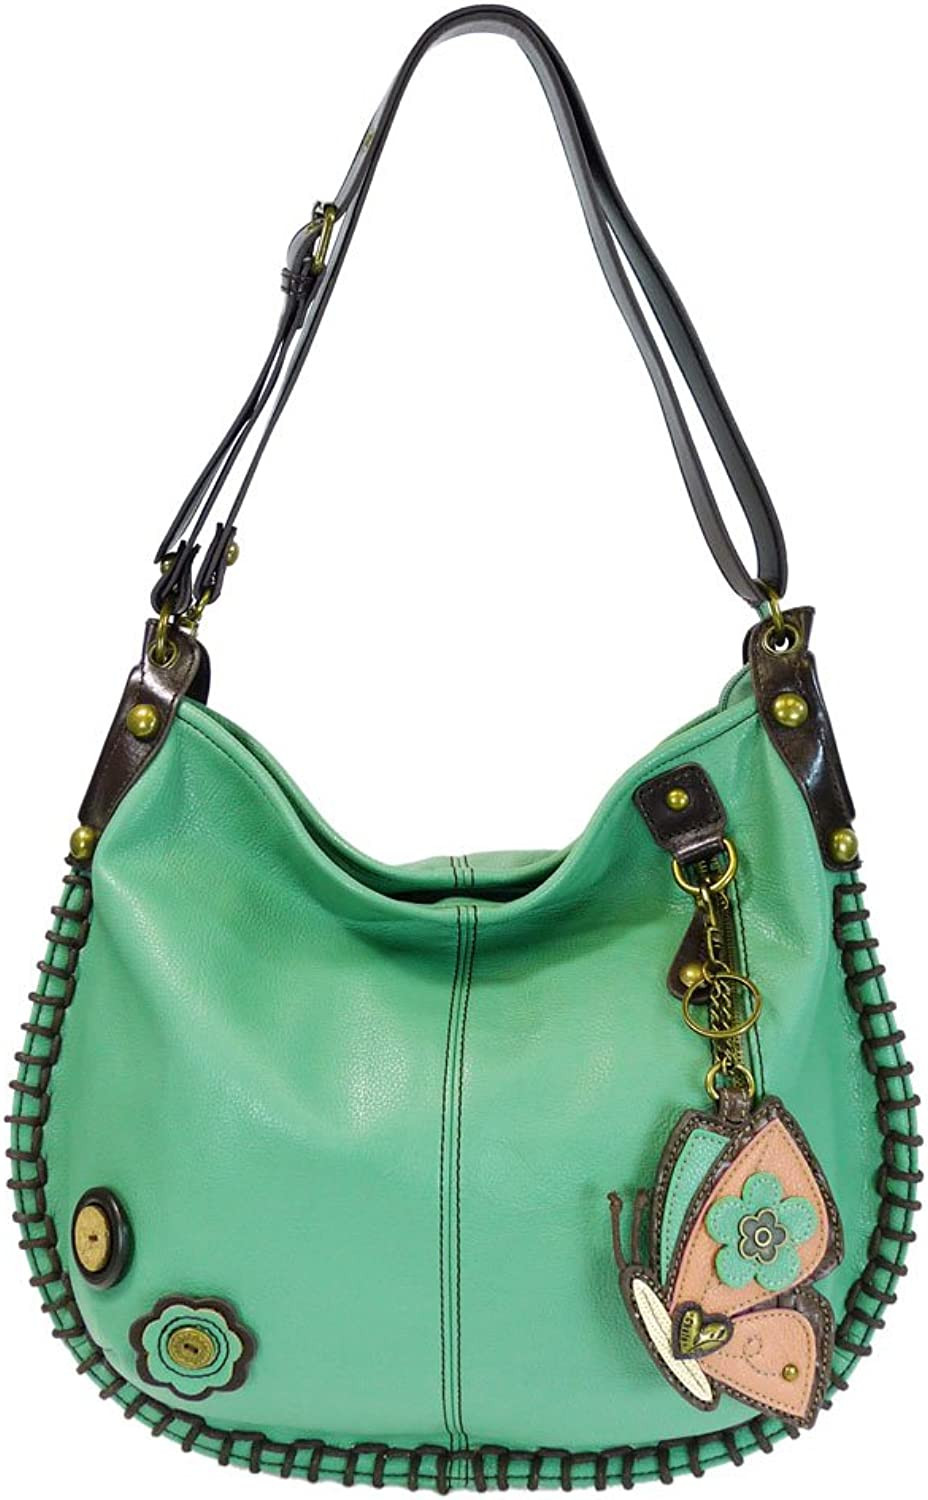 Charming Congreenible Hobo xbody Bag (Teal) (Butterfly)